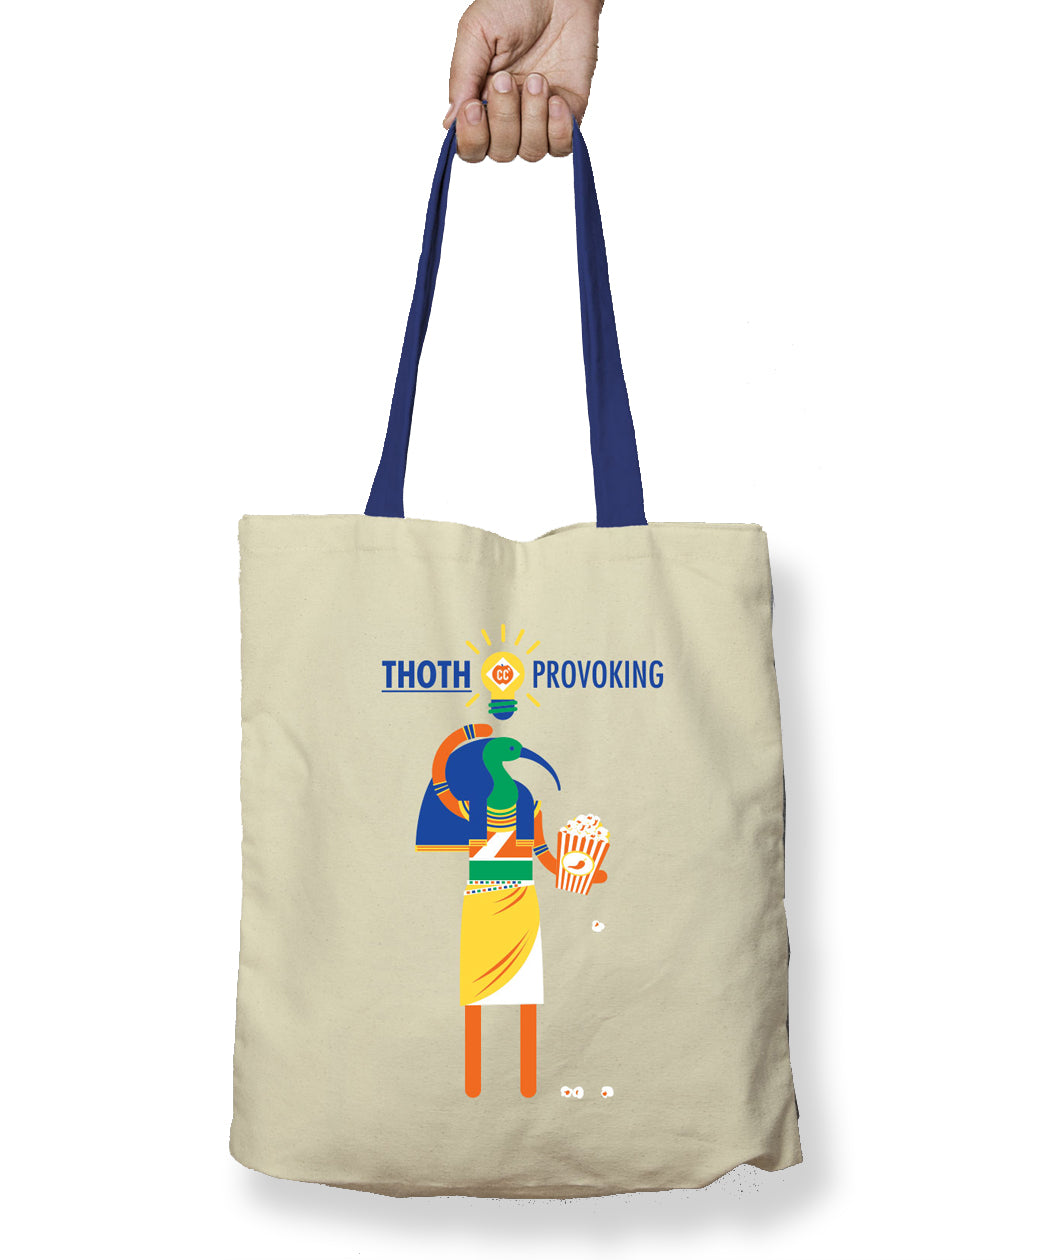 Thoth Provoking Tote Bag